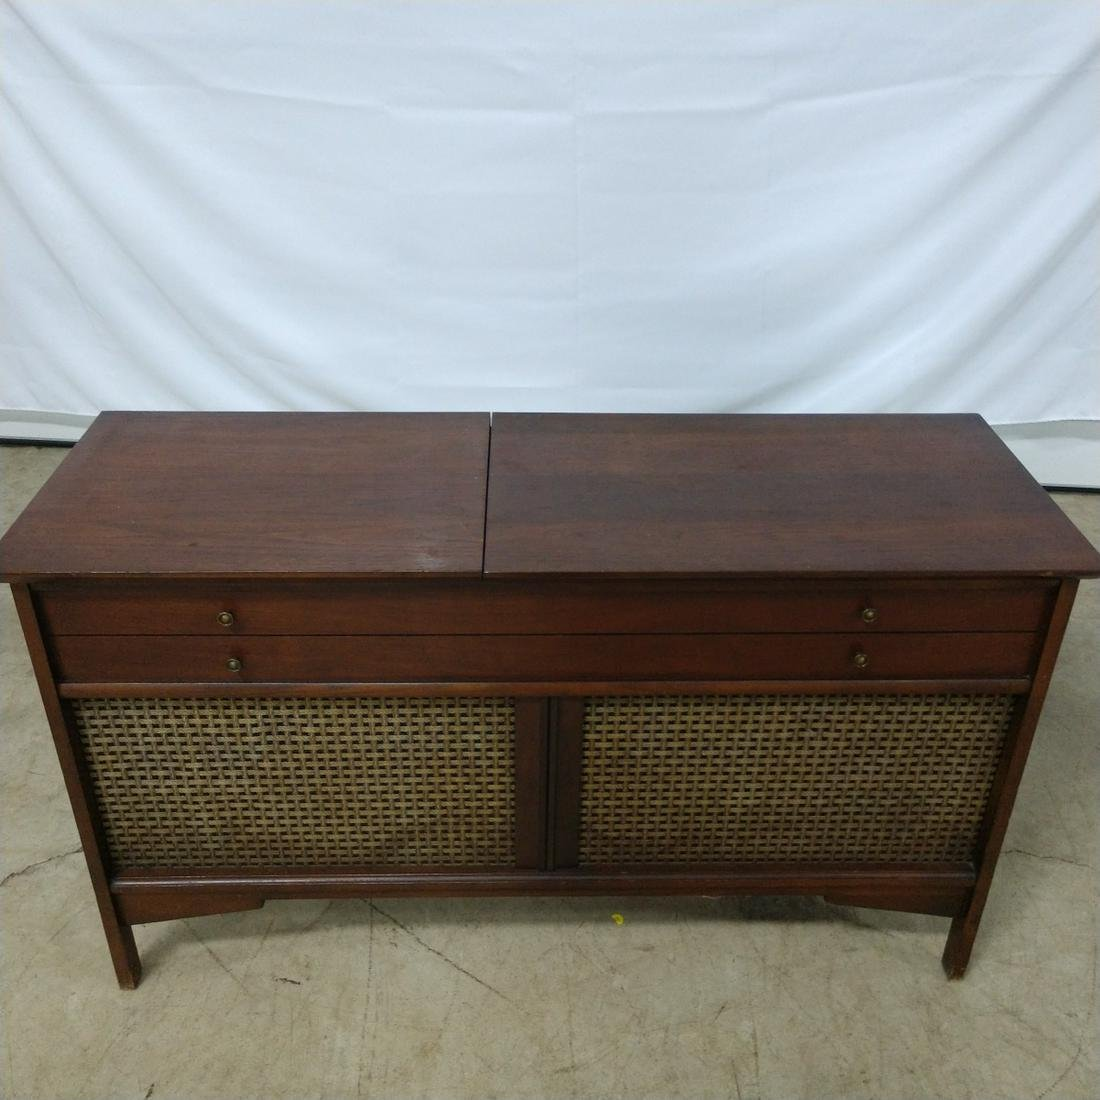 Stereo - Arvin Stereophonic Radio-Phonograph